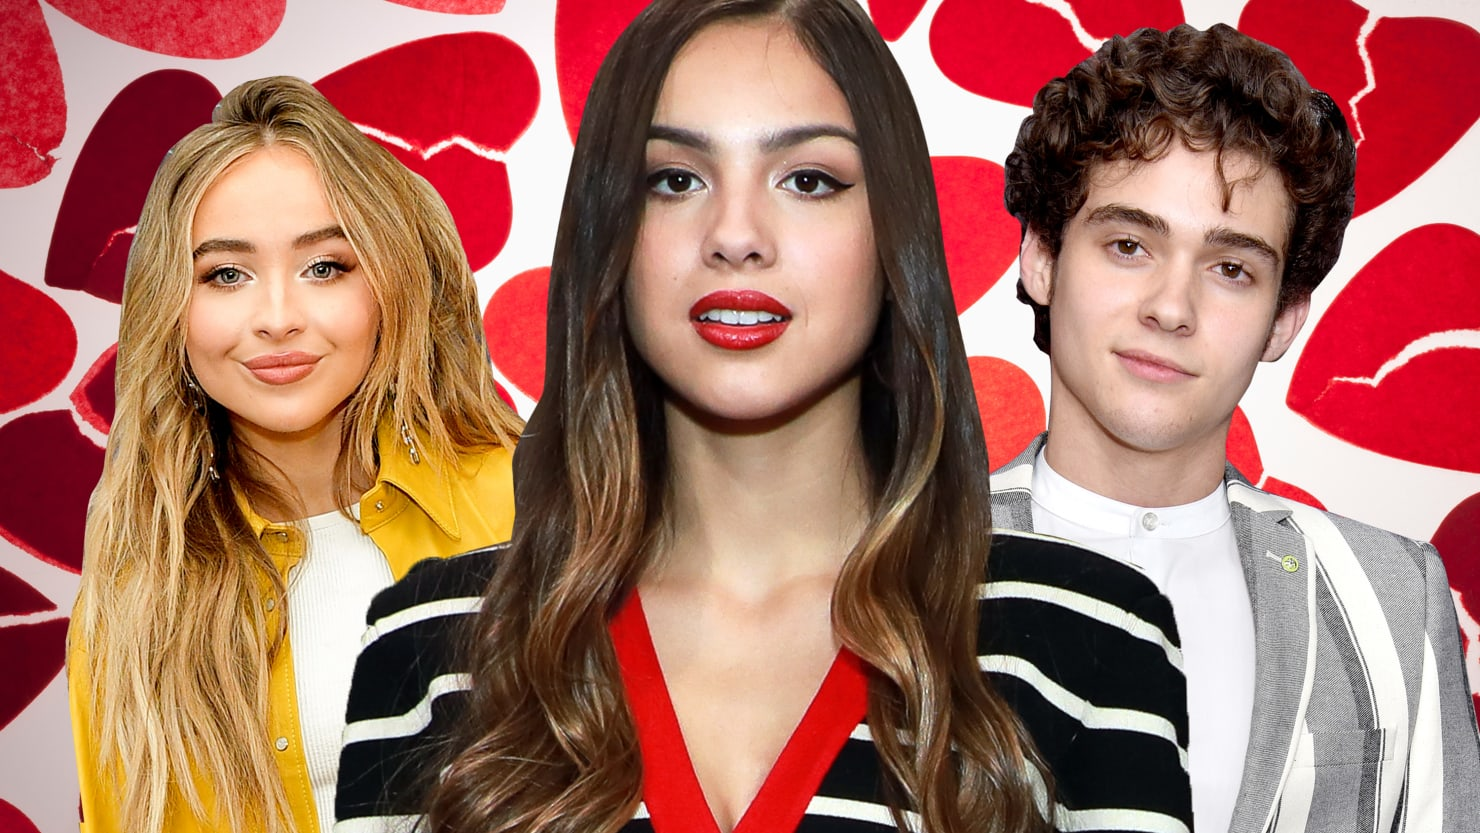 Inside the Messy Disney Love Triangle Dominating the Pop Charts